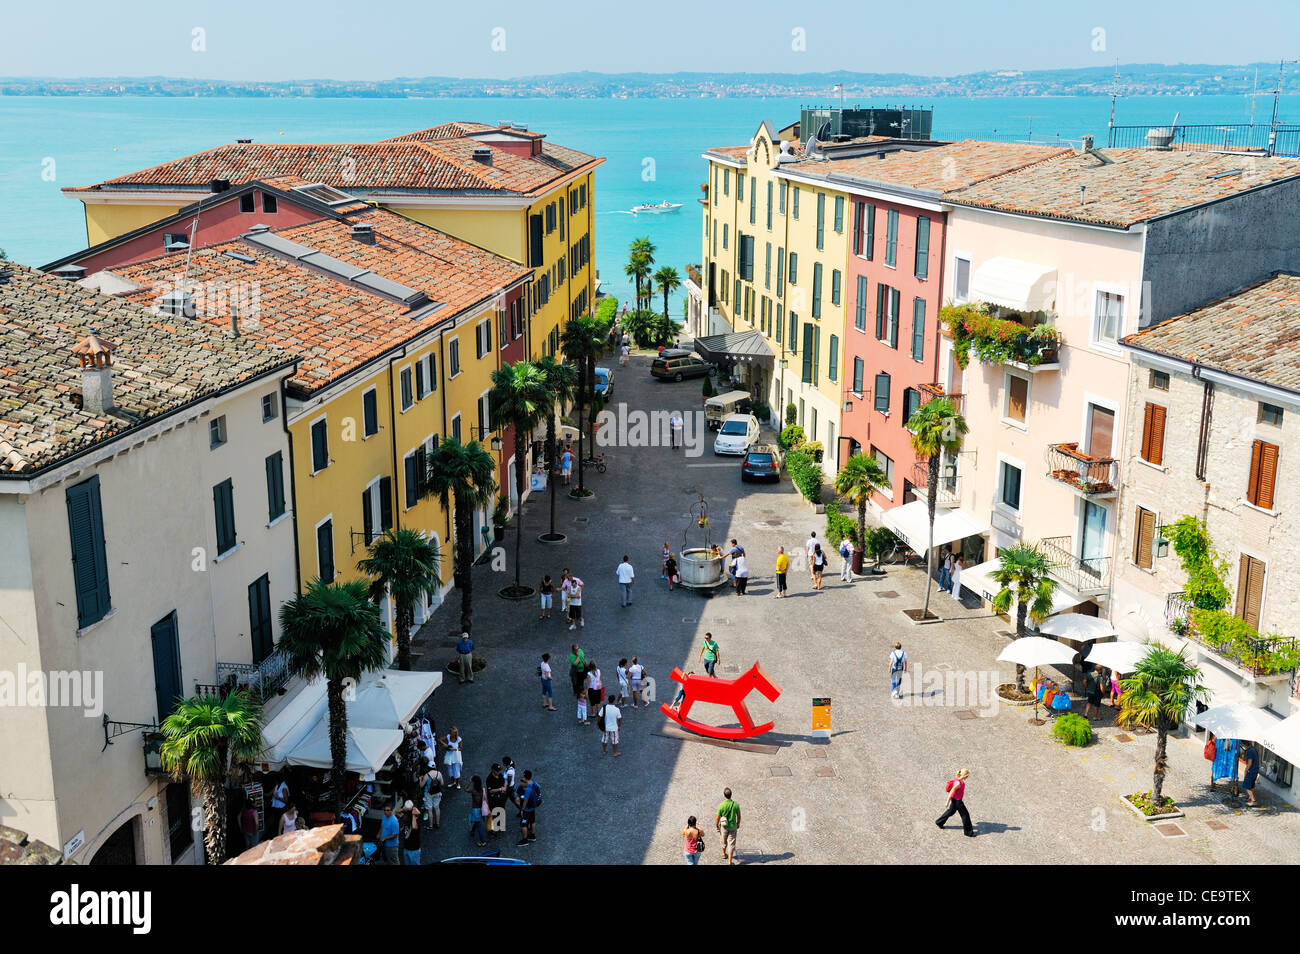 The holiday resort town of Sirmione on Lake Garda, Lombardy, Italy. From the castle over Piazza Castello to Lago - Stock Image